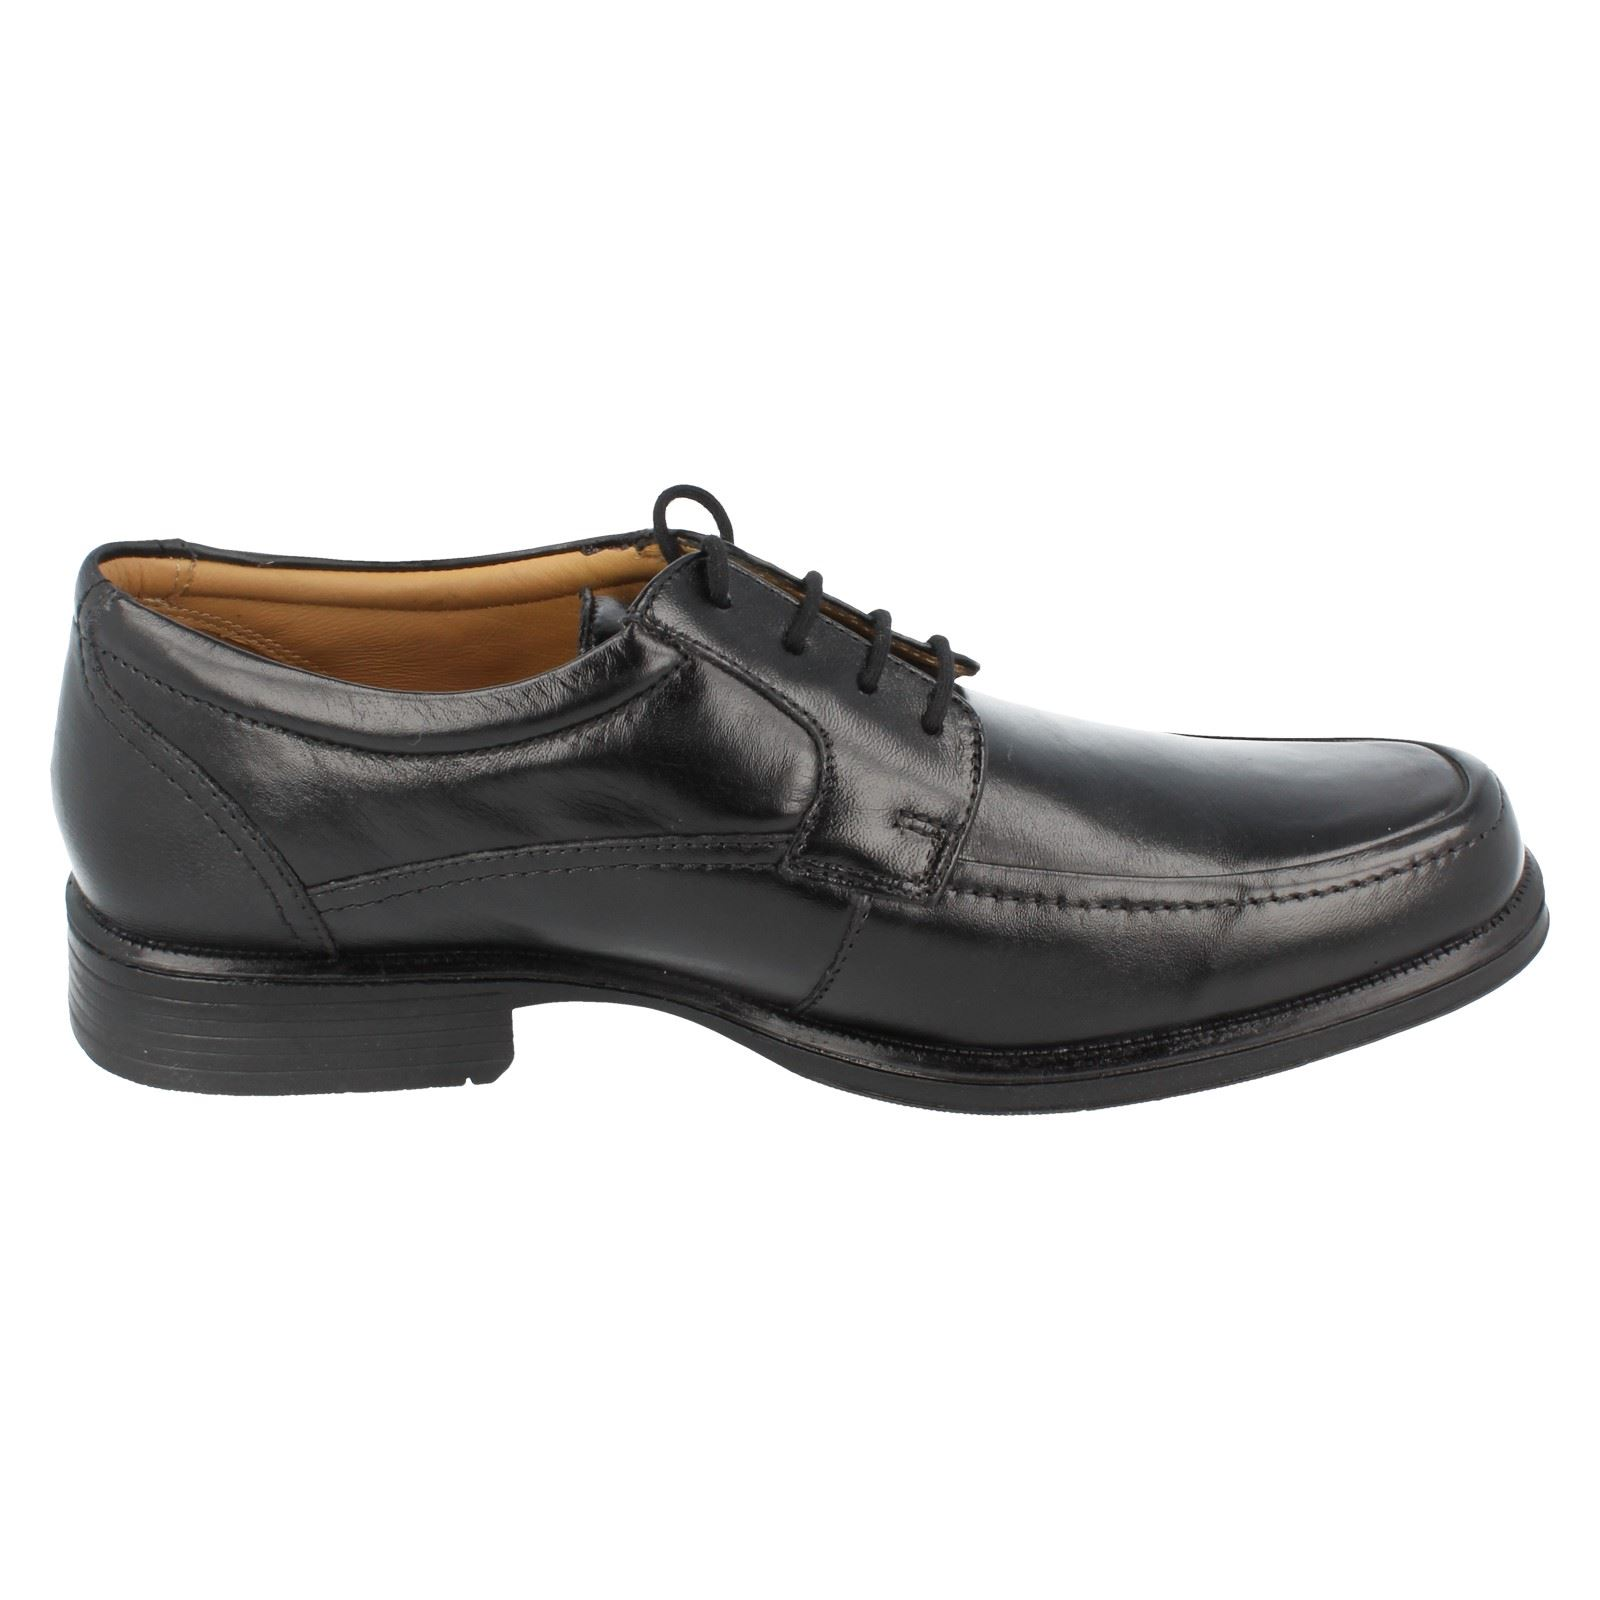 Uomo Clarks Lace Up Shoes N Style Hook Spring ~ N Shoes 44147b